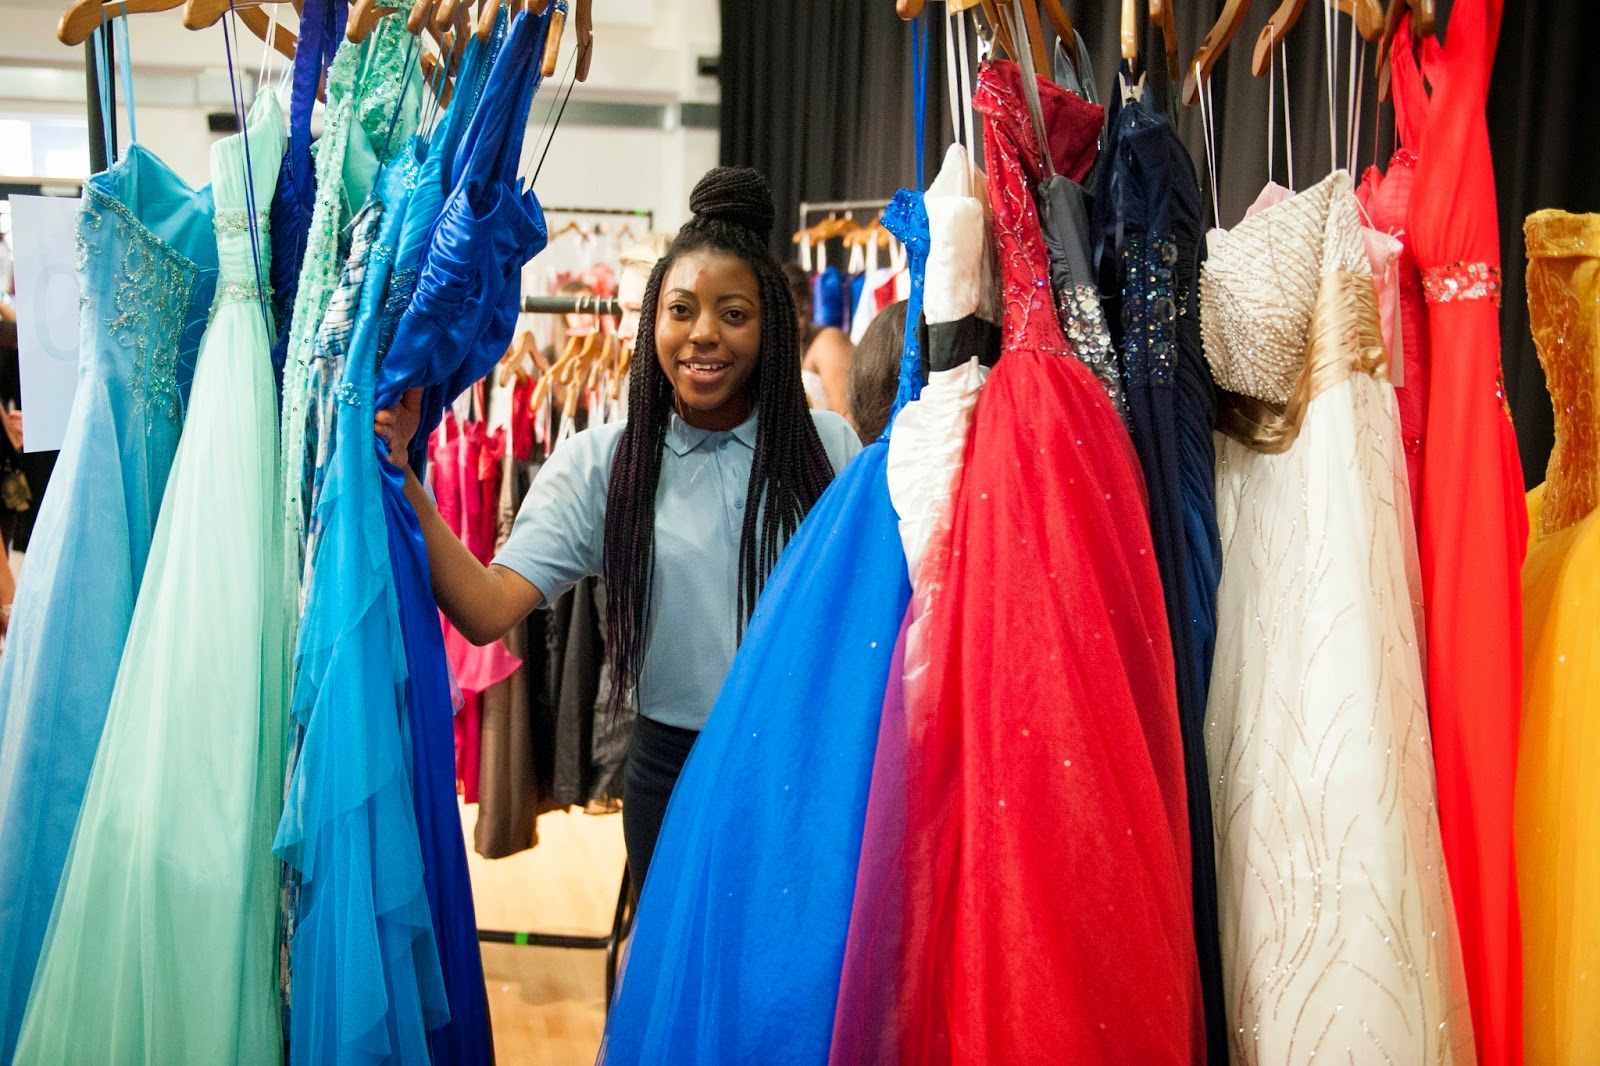 Frumpy To Funky Davids Bridal Donates 150 Prom Dresses To